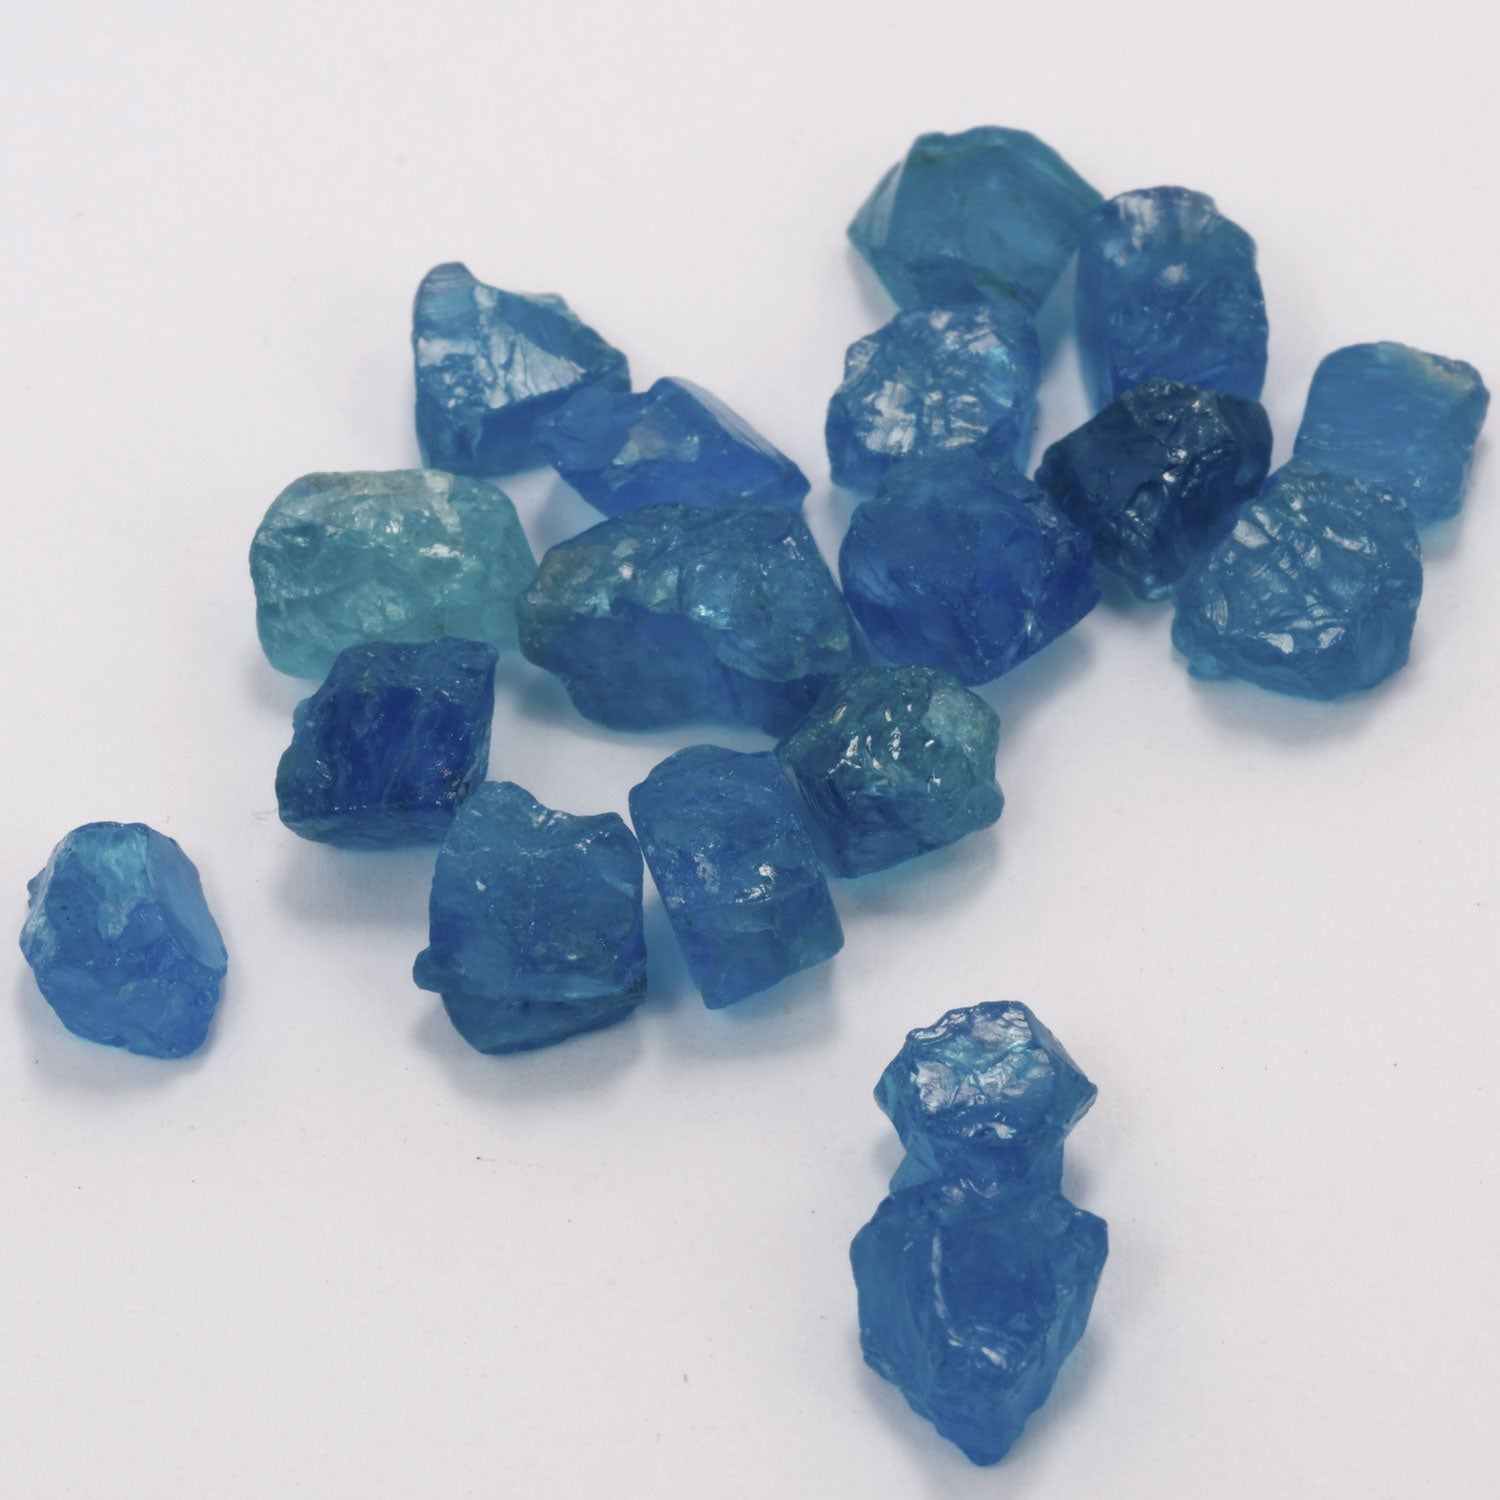 10ct Neon Apatite Rough Parcels